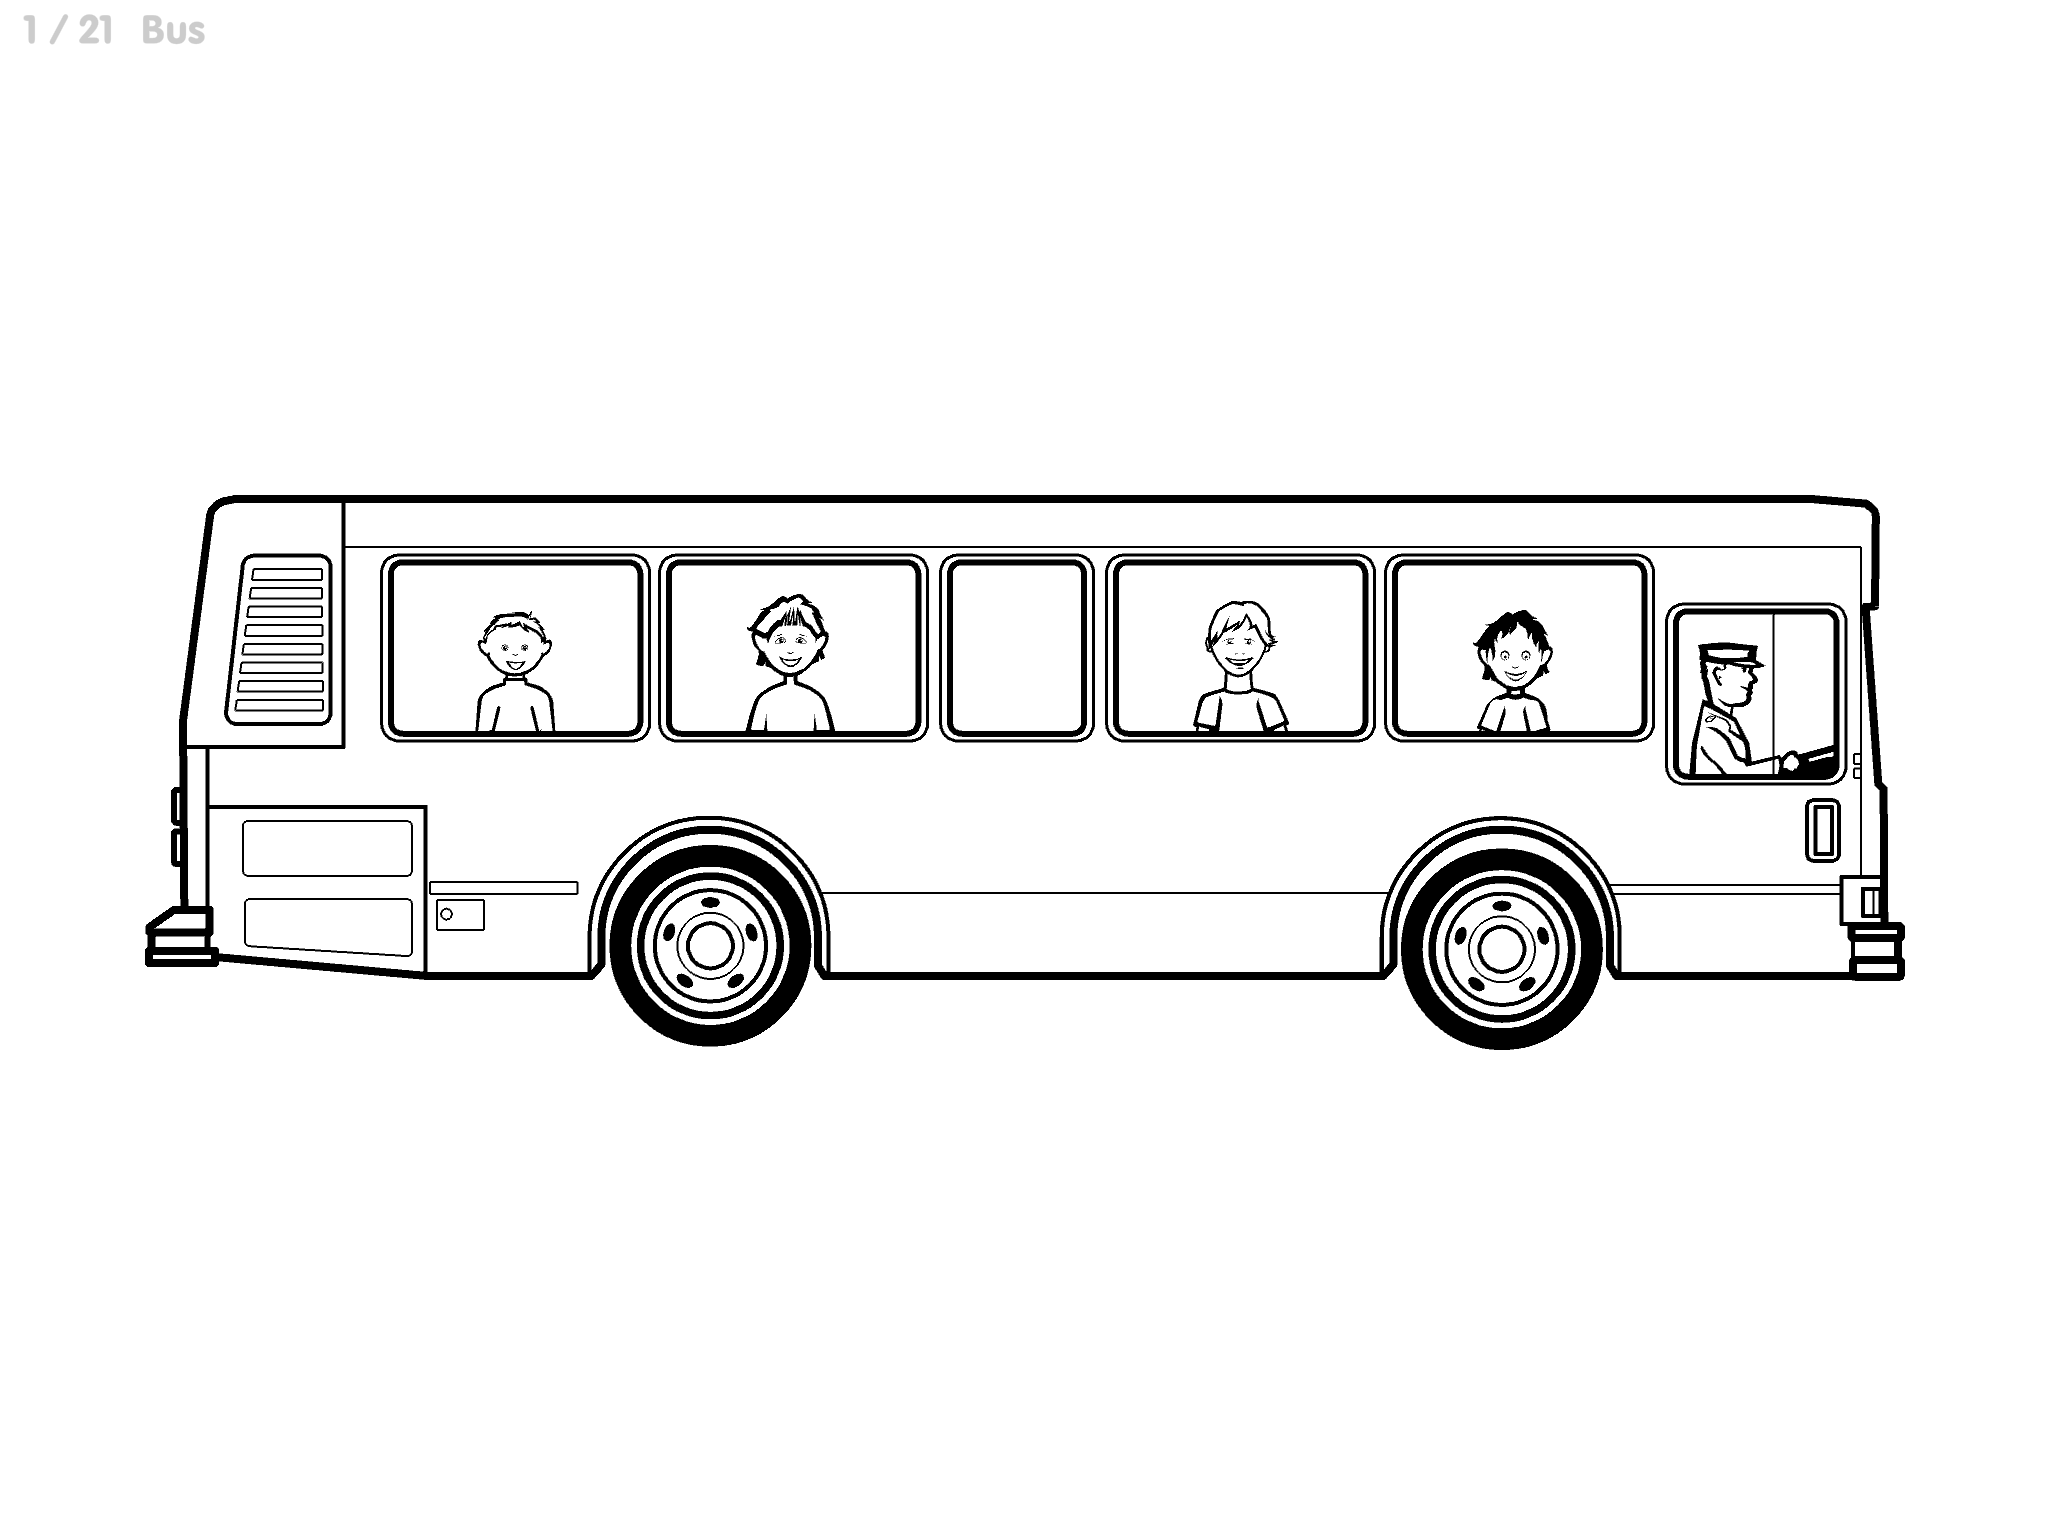 Complex Line Art bus image: White background with detailed city bus and people outlined in black. People have more detailed hair, clothes, and faces.